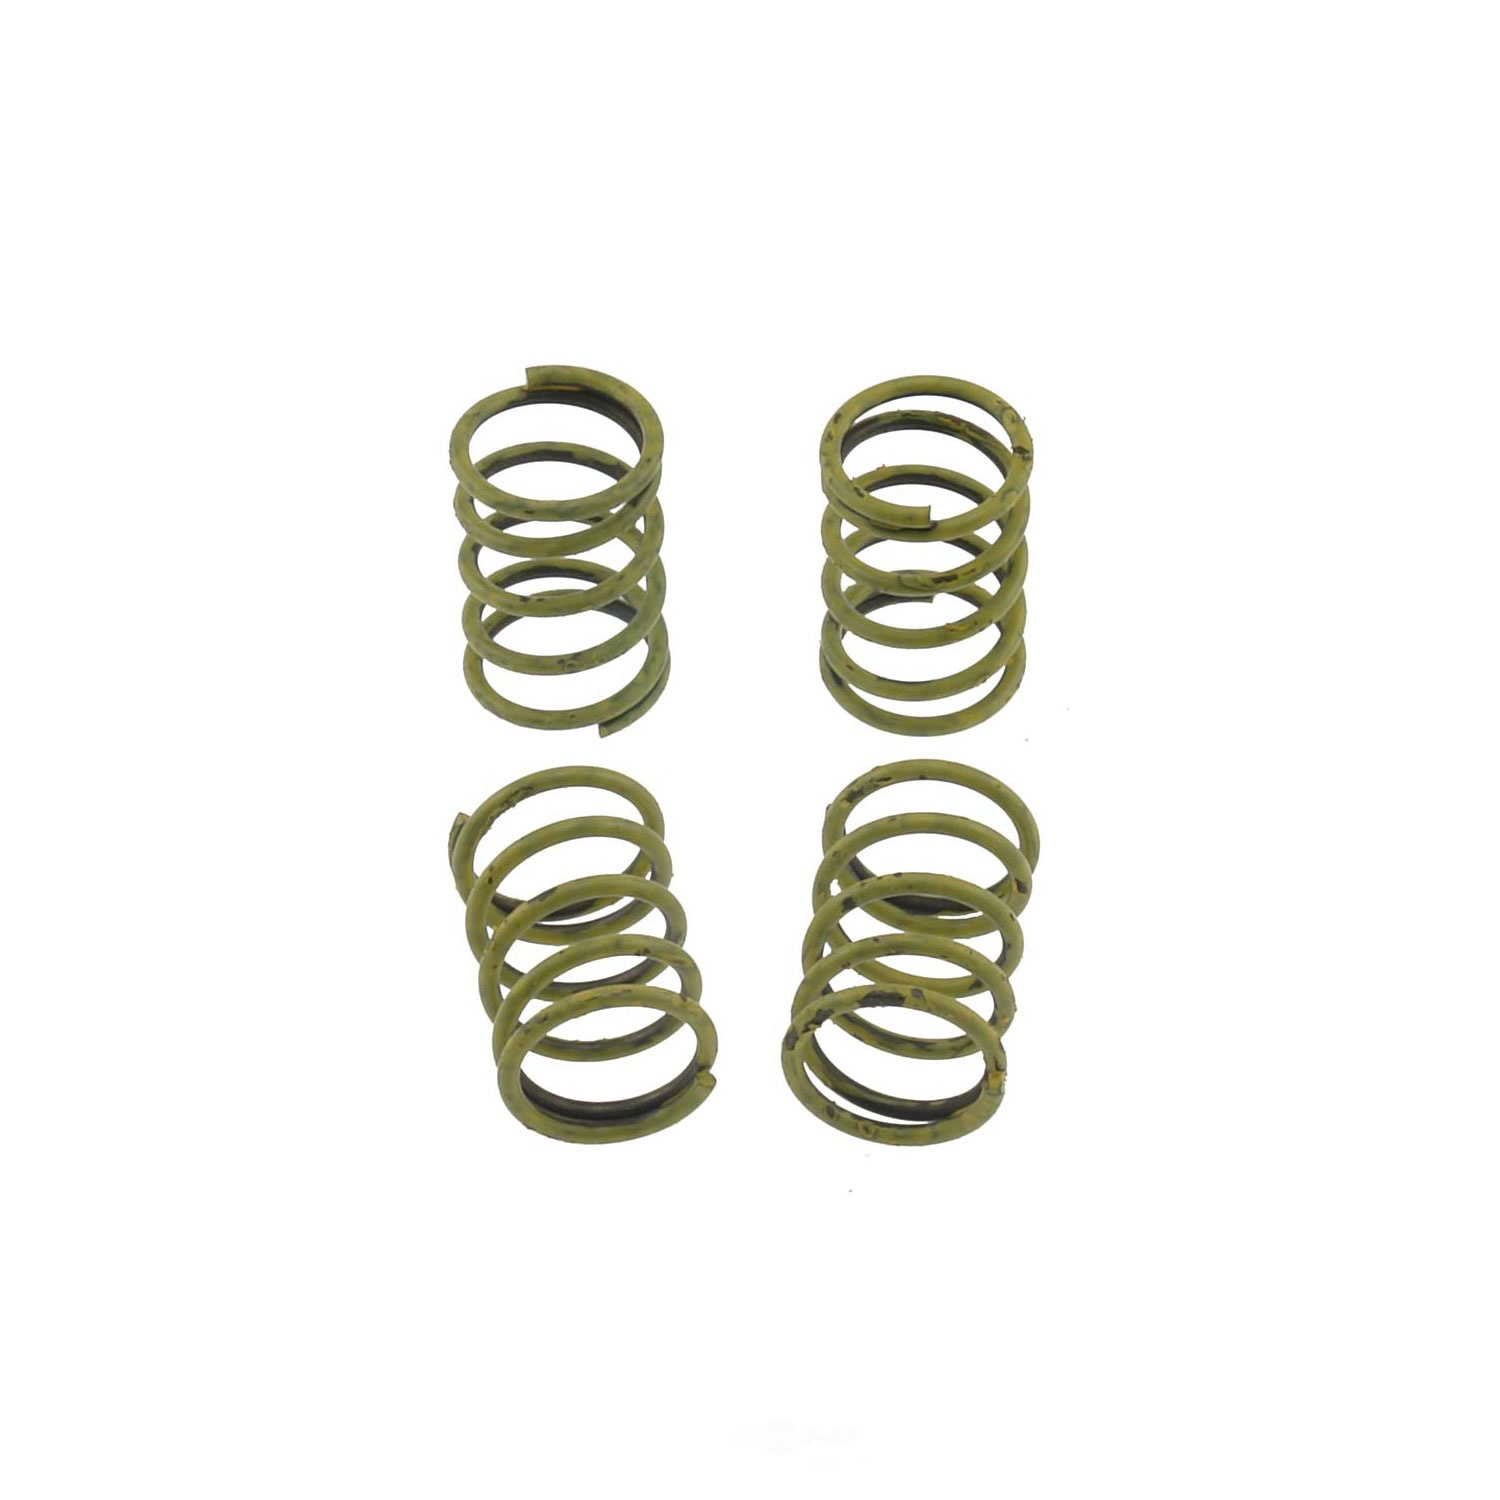 CARLSON QUALITY BRAKE PARTS - Brake Hold Down Spring - CRL H1150-2